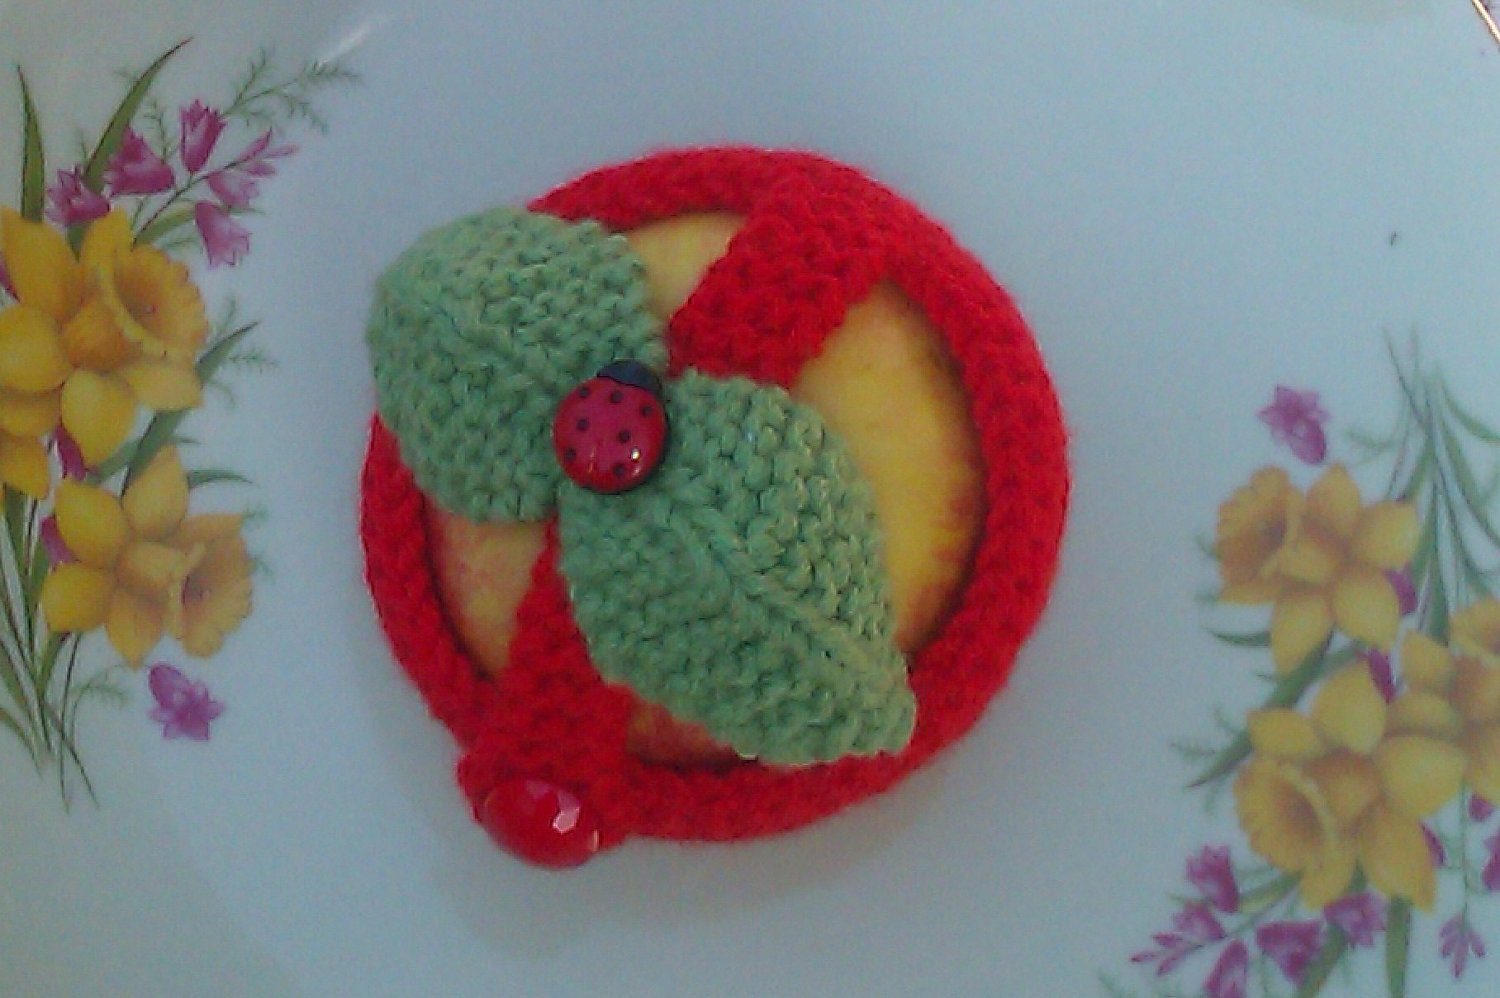 Hand knitted apple cozy.